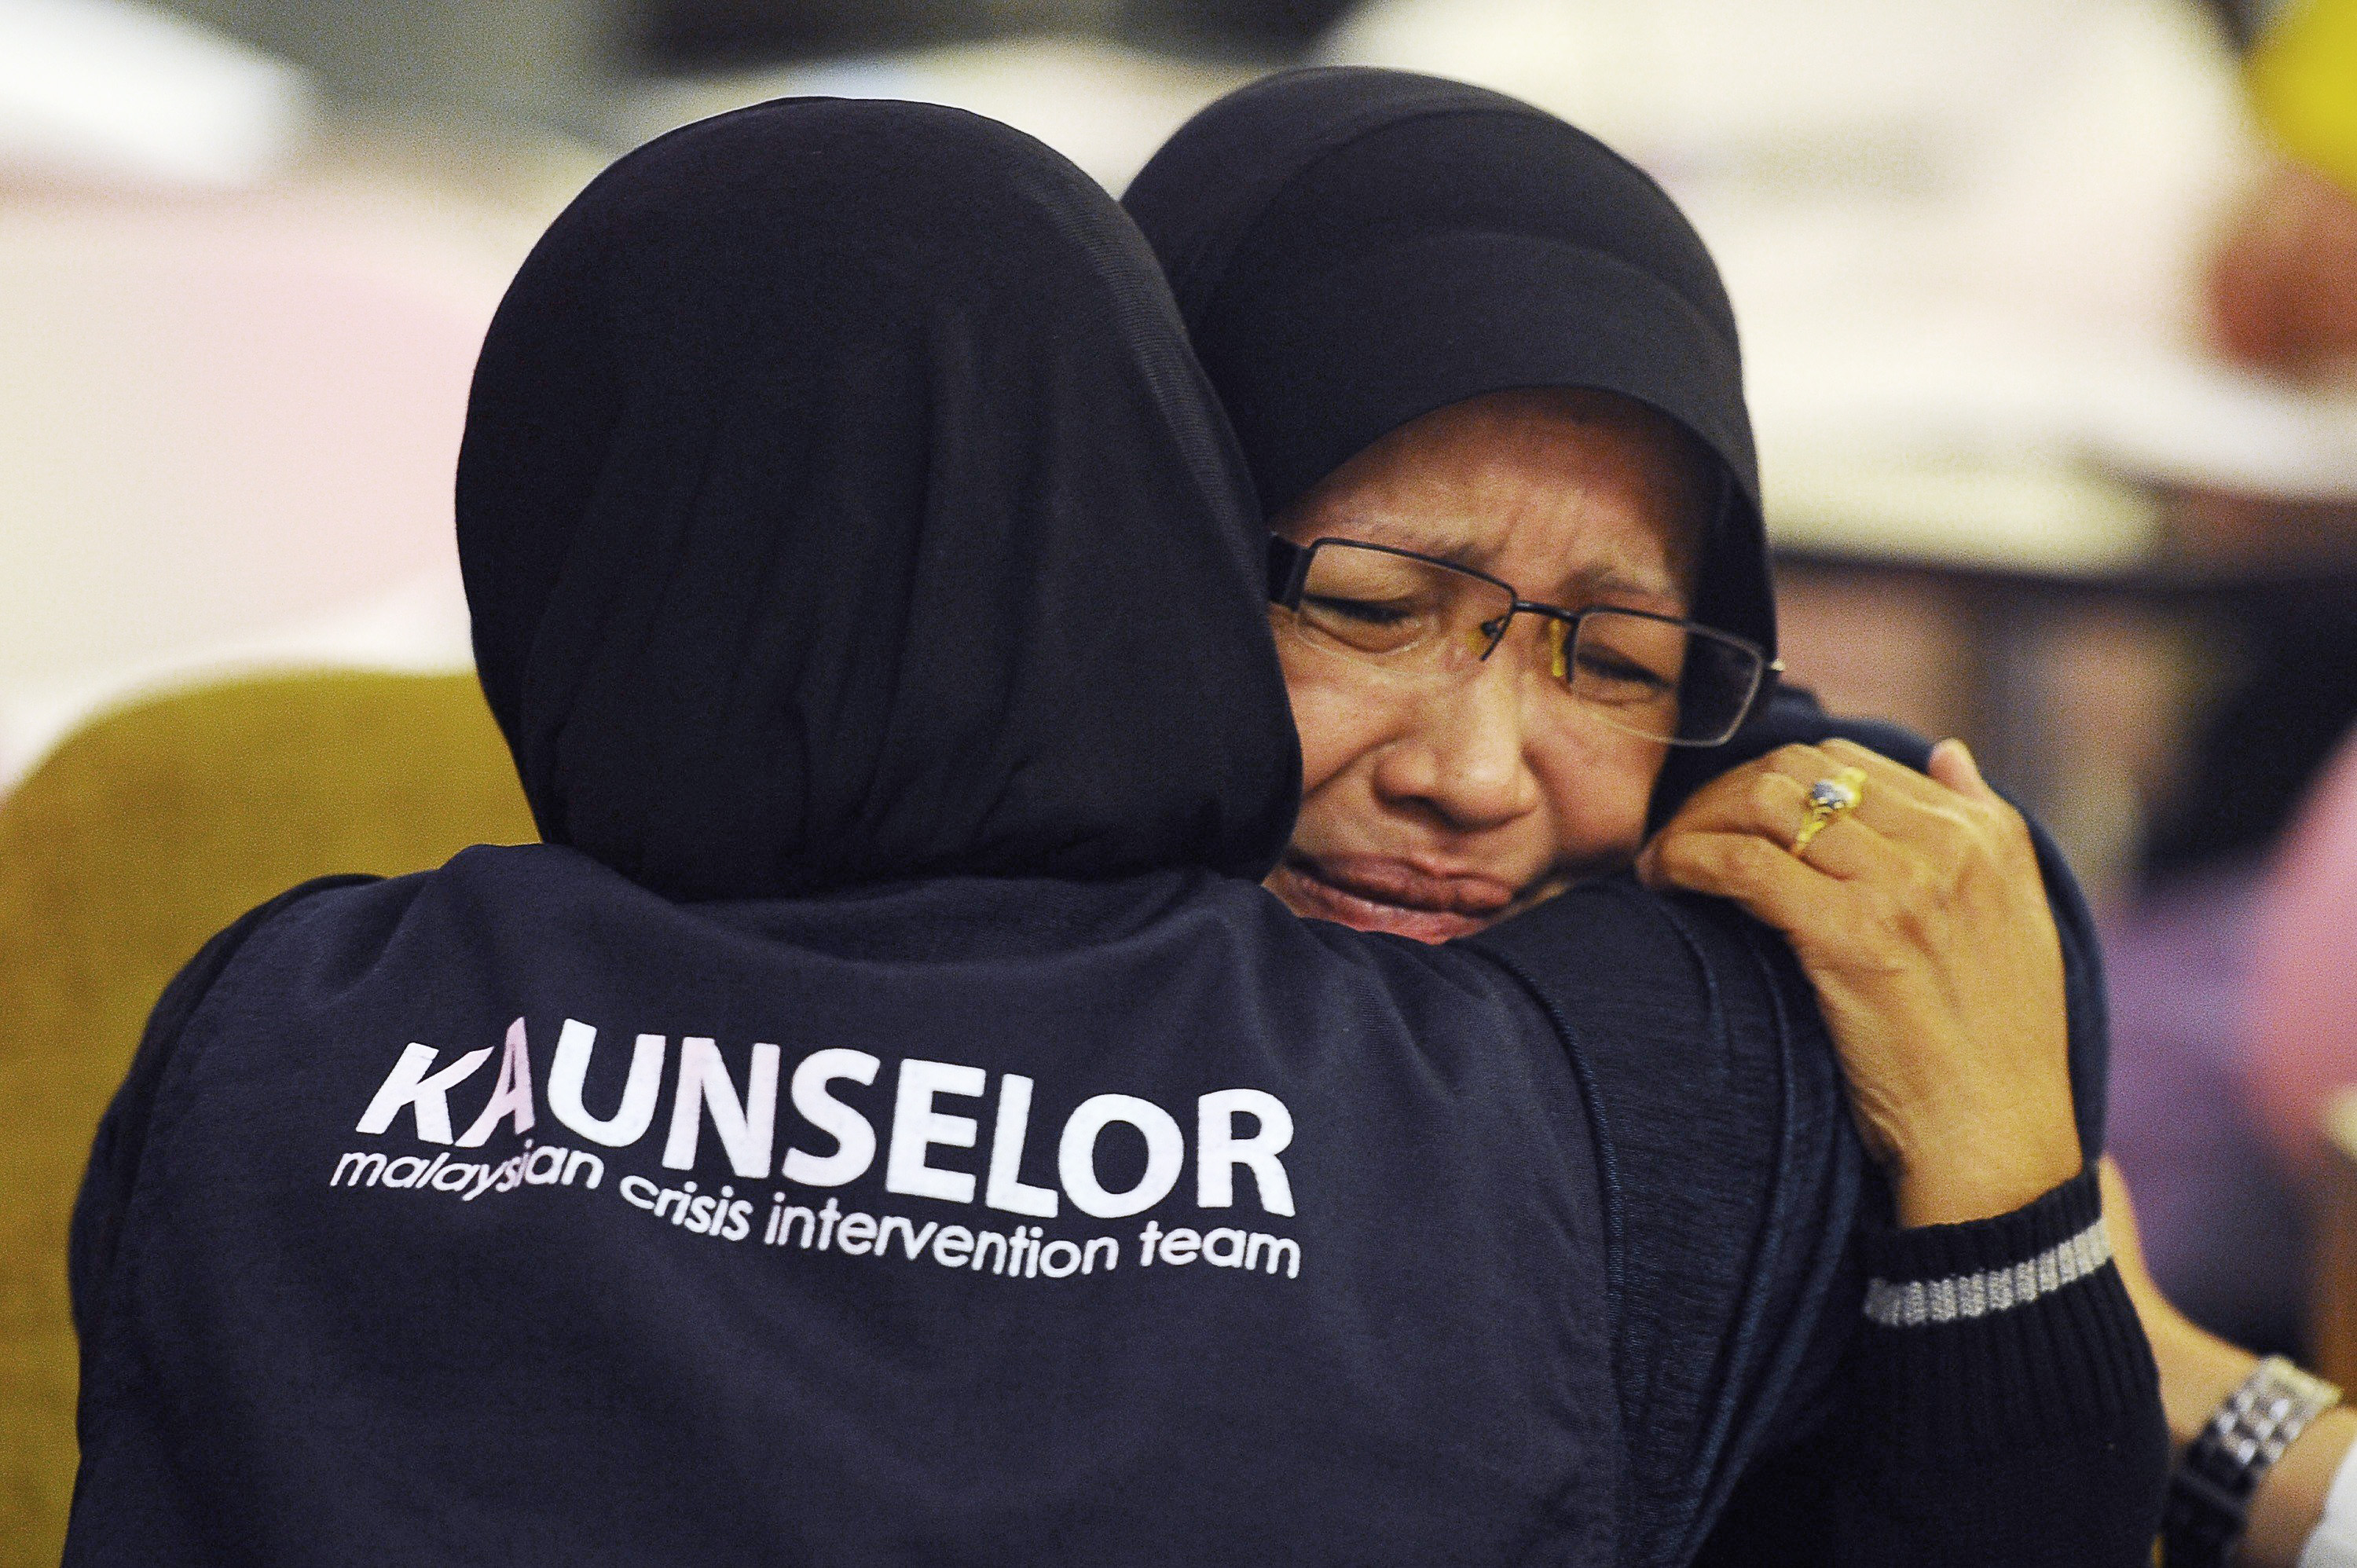 A family member of one of the passengers aboard a missing plane is consoled by a crisis counselor at a hotel in Putrjaya, outside Kuala Lumpur, on March 9, 2014.